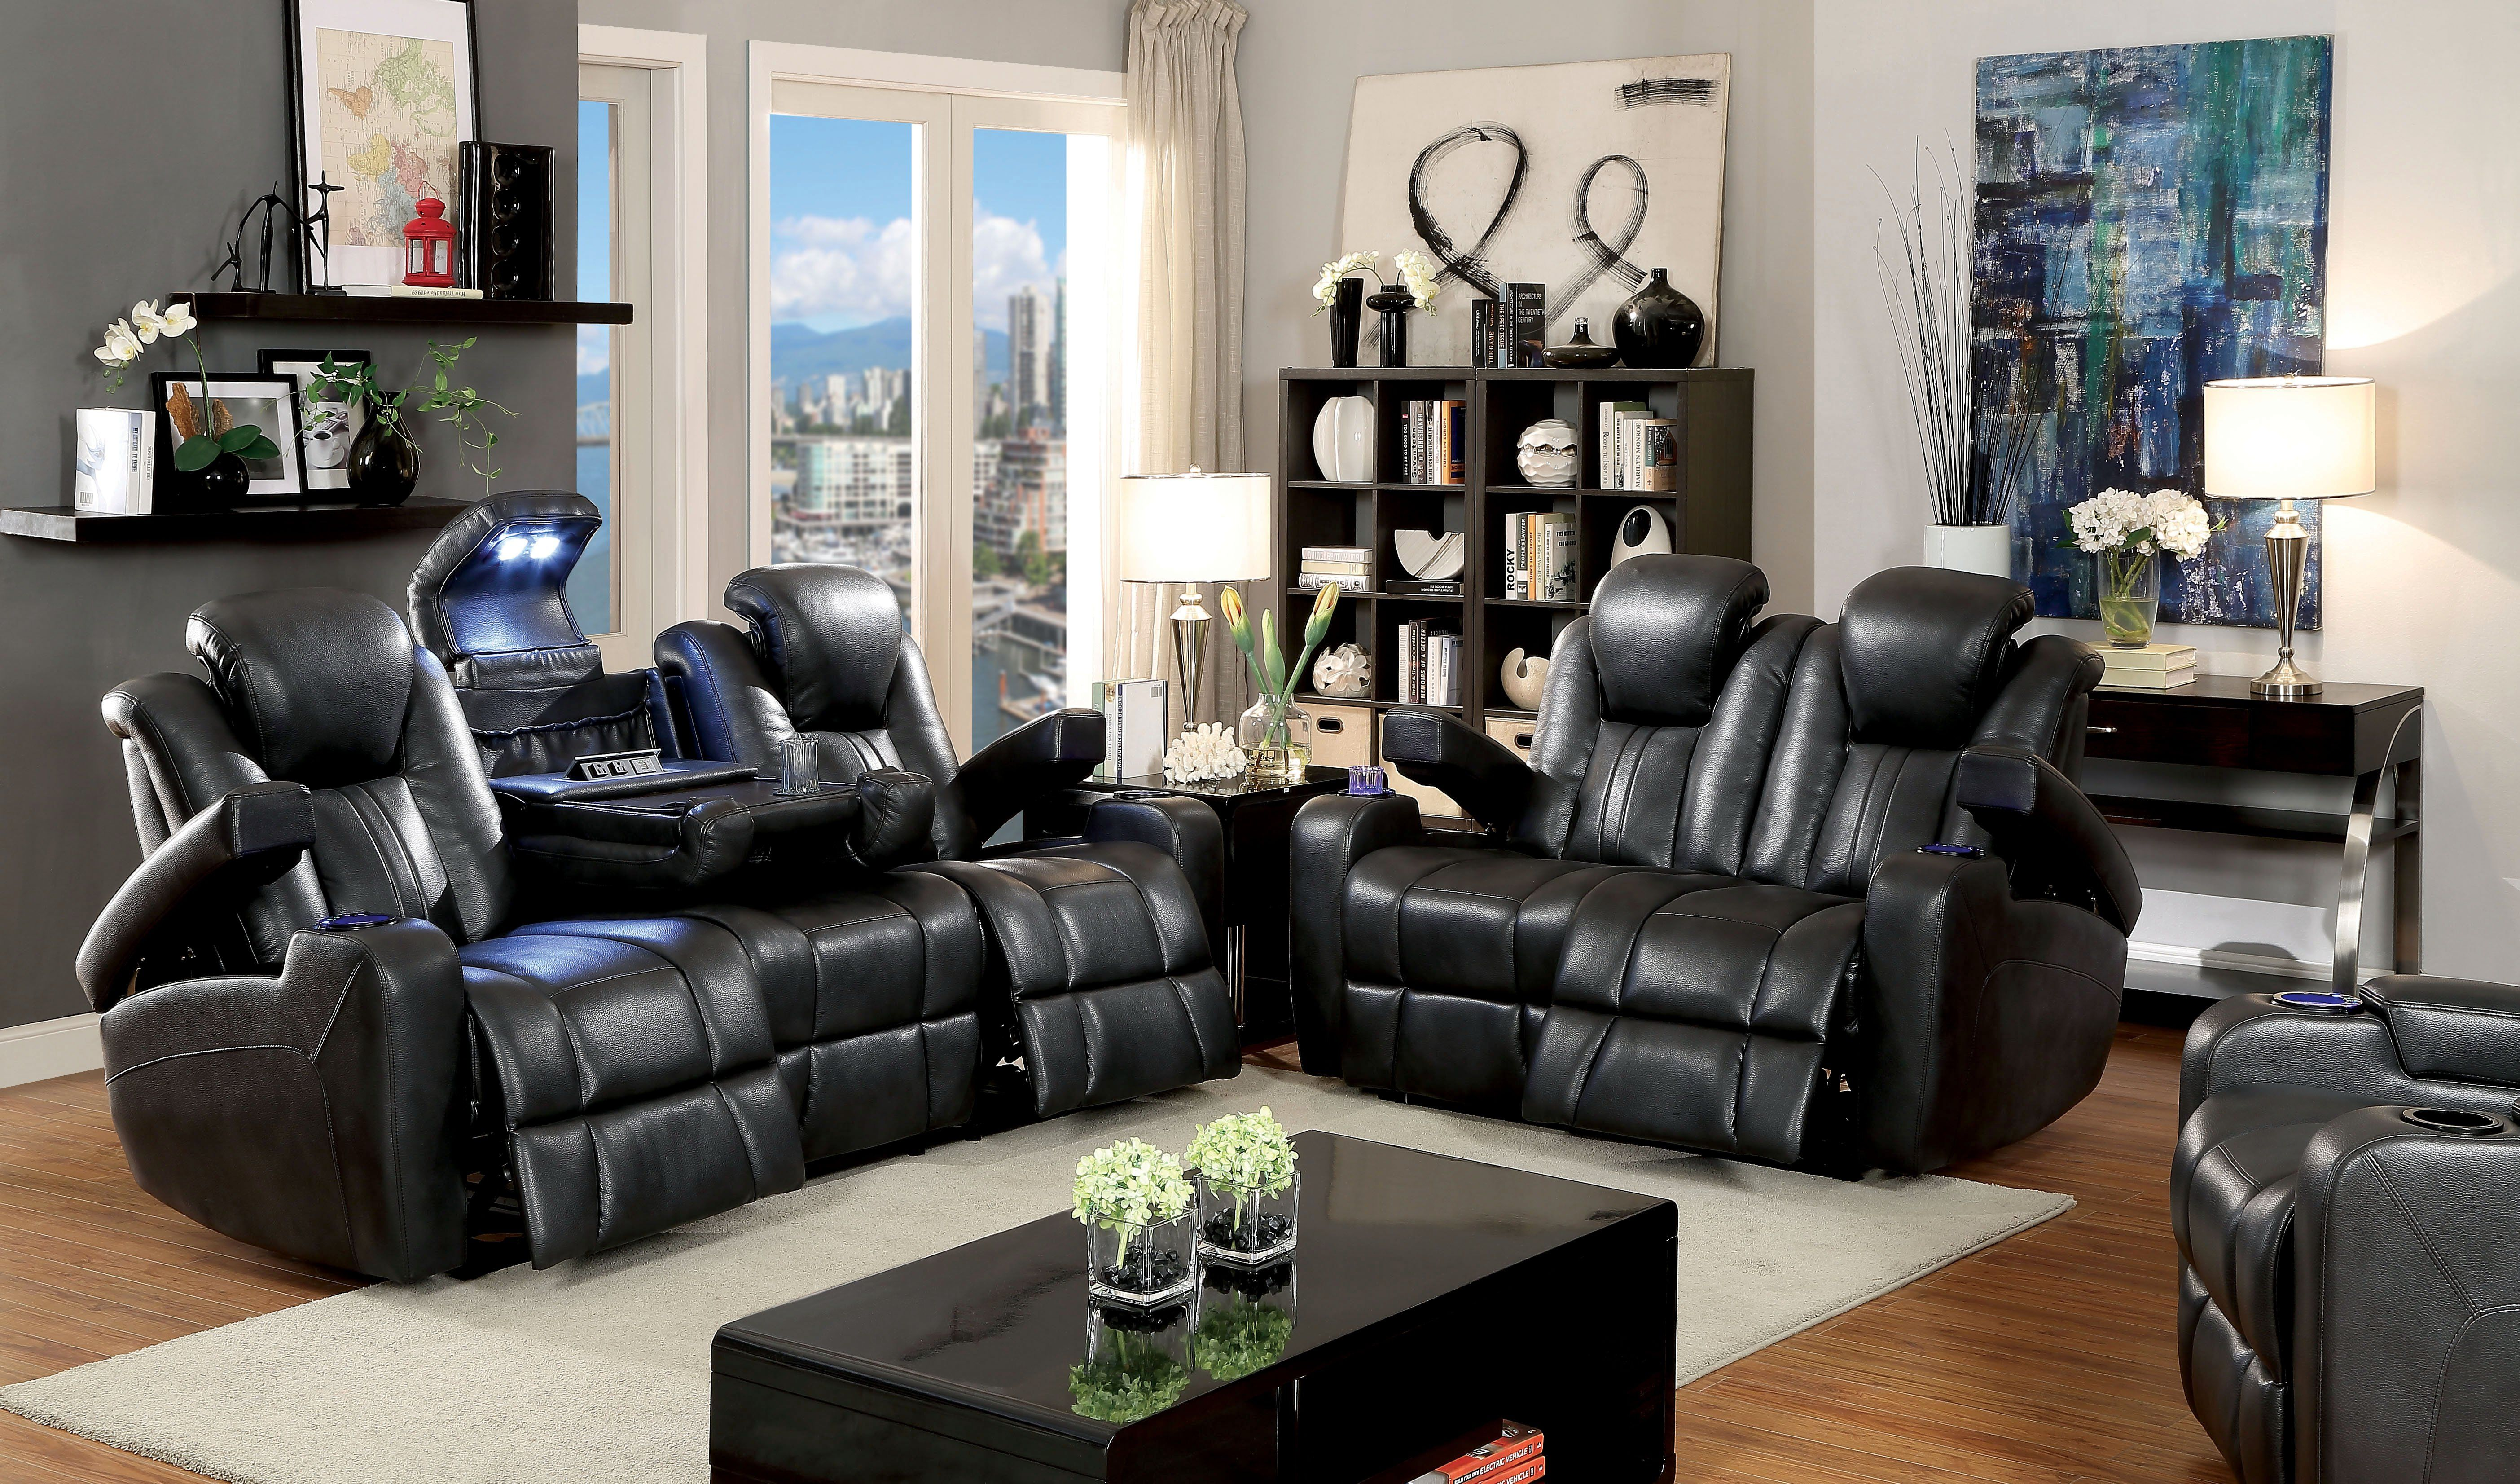 Phenomenal Janis Contemporary Breathable Leather Recliner Sofa Dark Home Interior And Landscaping Palasignezvosmurscom